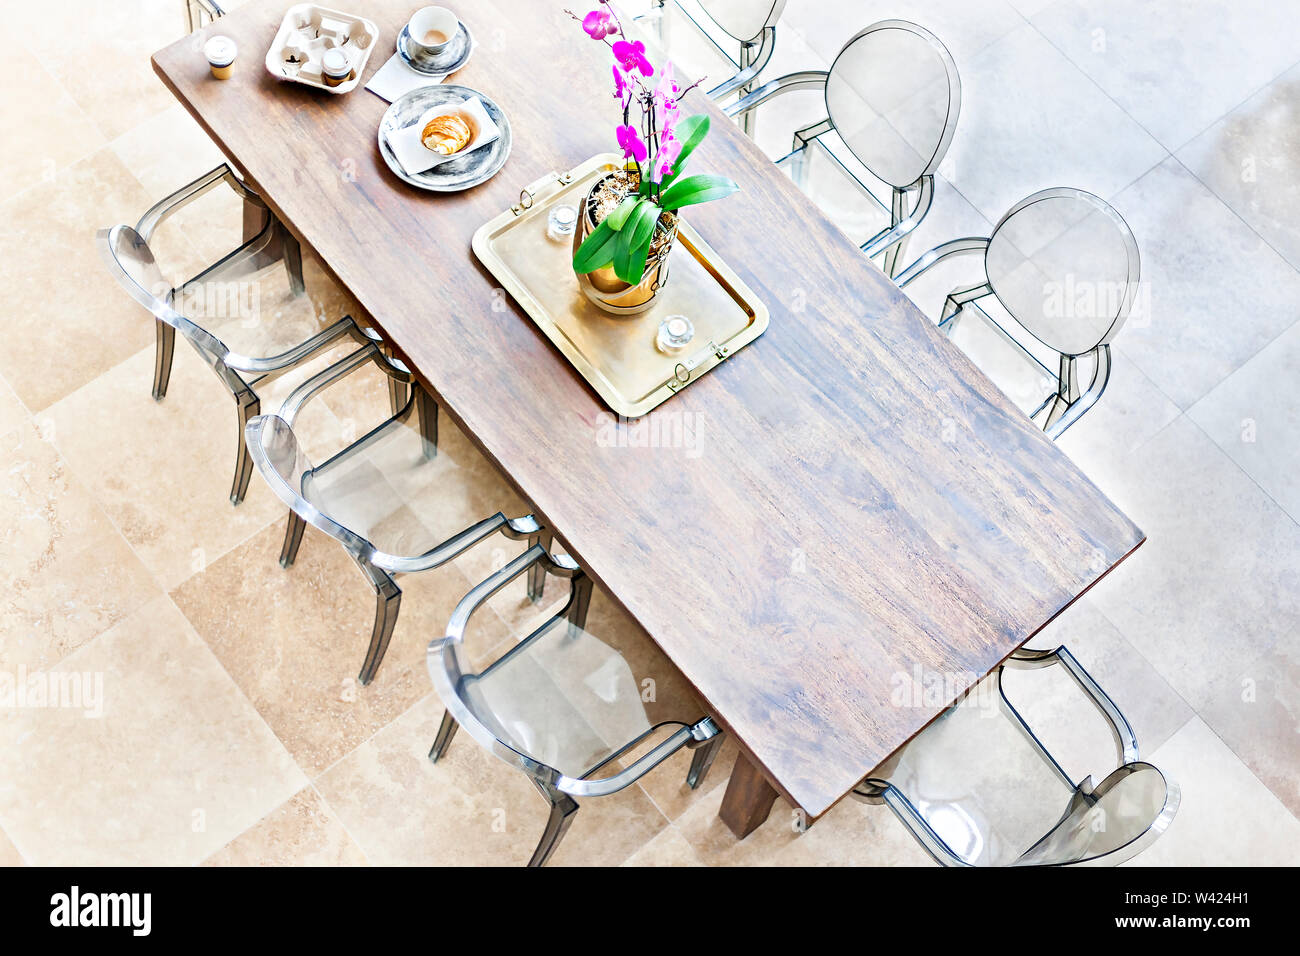 Wooden Dining Table Above View With Plastic Chairs The Golf Color Plate And Vase Holding A Purple Flowering Plants With Green Leaves Beside Tea Cups Stock Photo Alamy